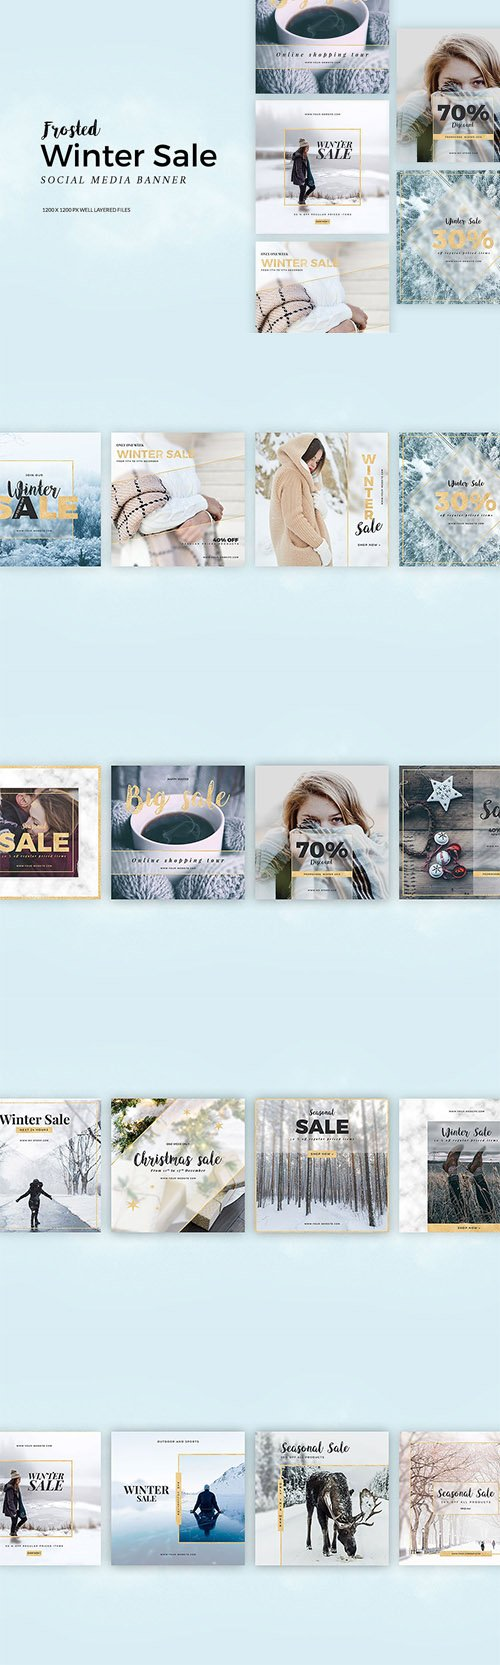 Frosted Winter Sale Banner - CM 2142192